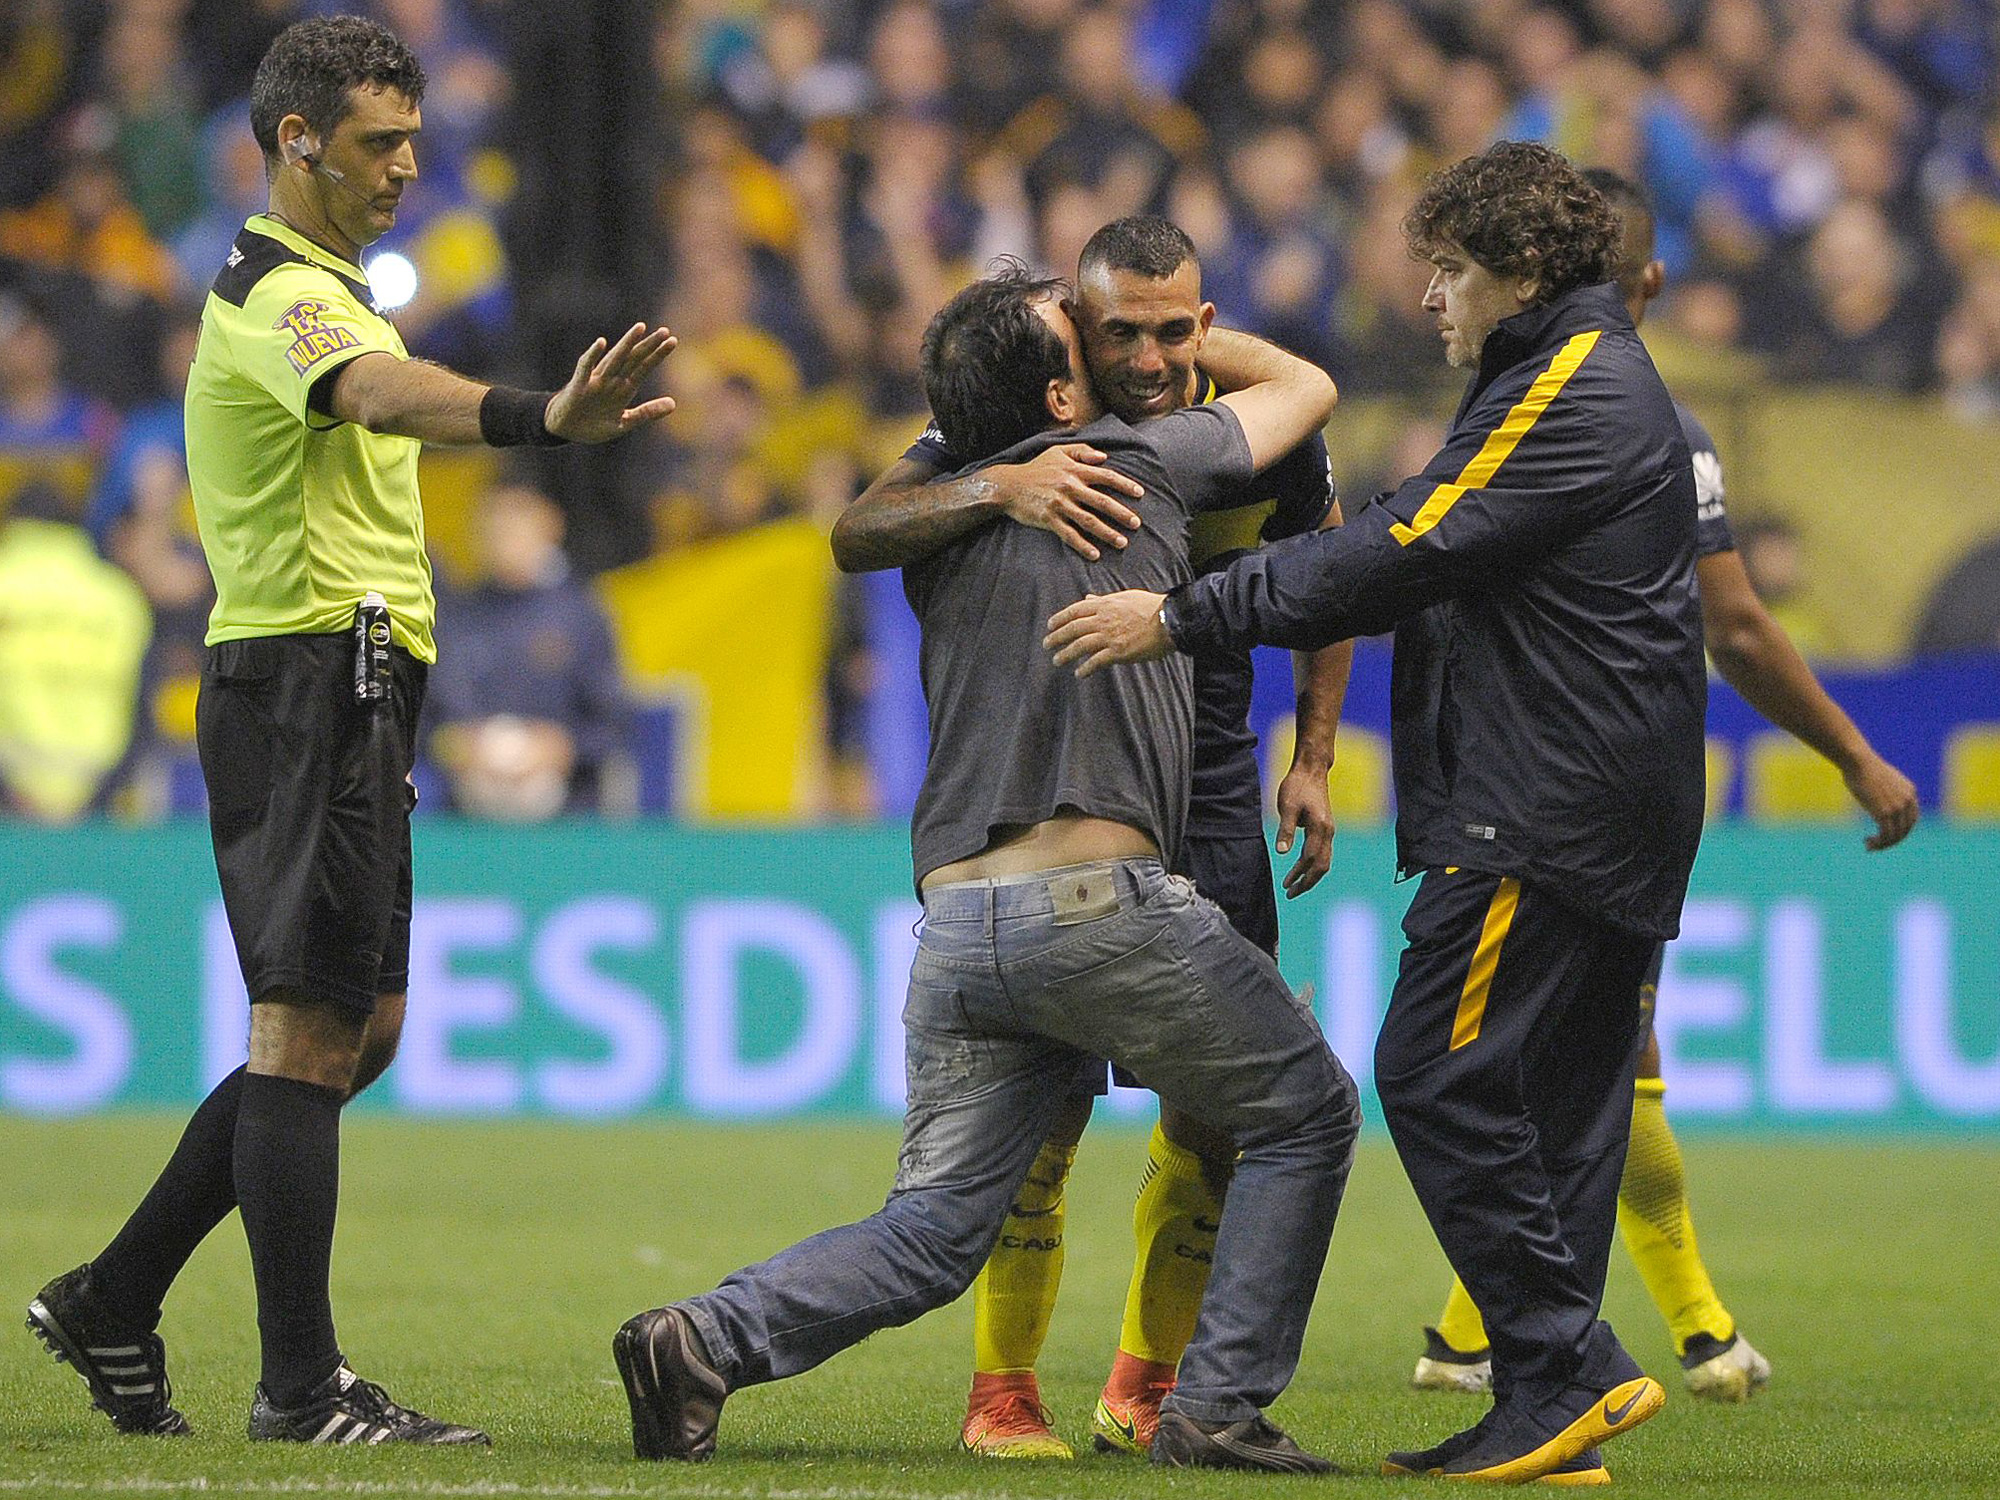 A fan hugs Carlos Tevez on the field at La Bombonera